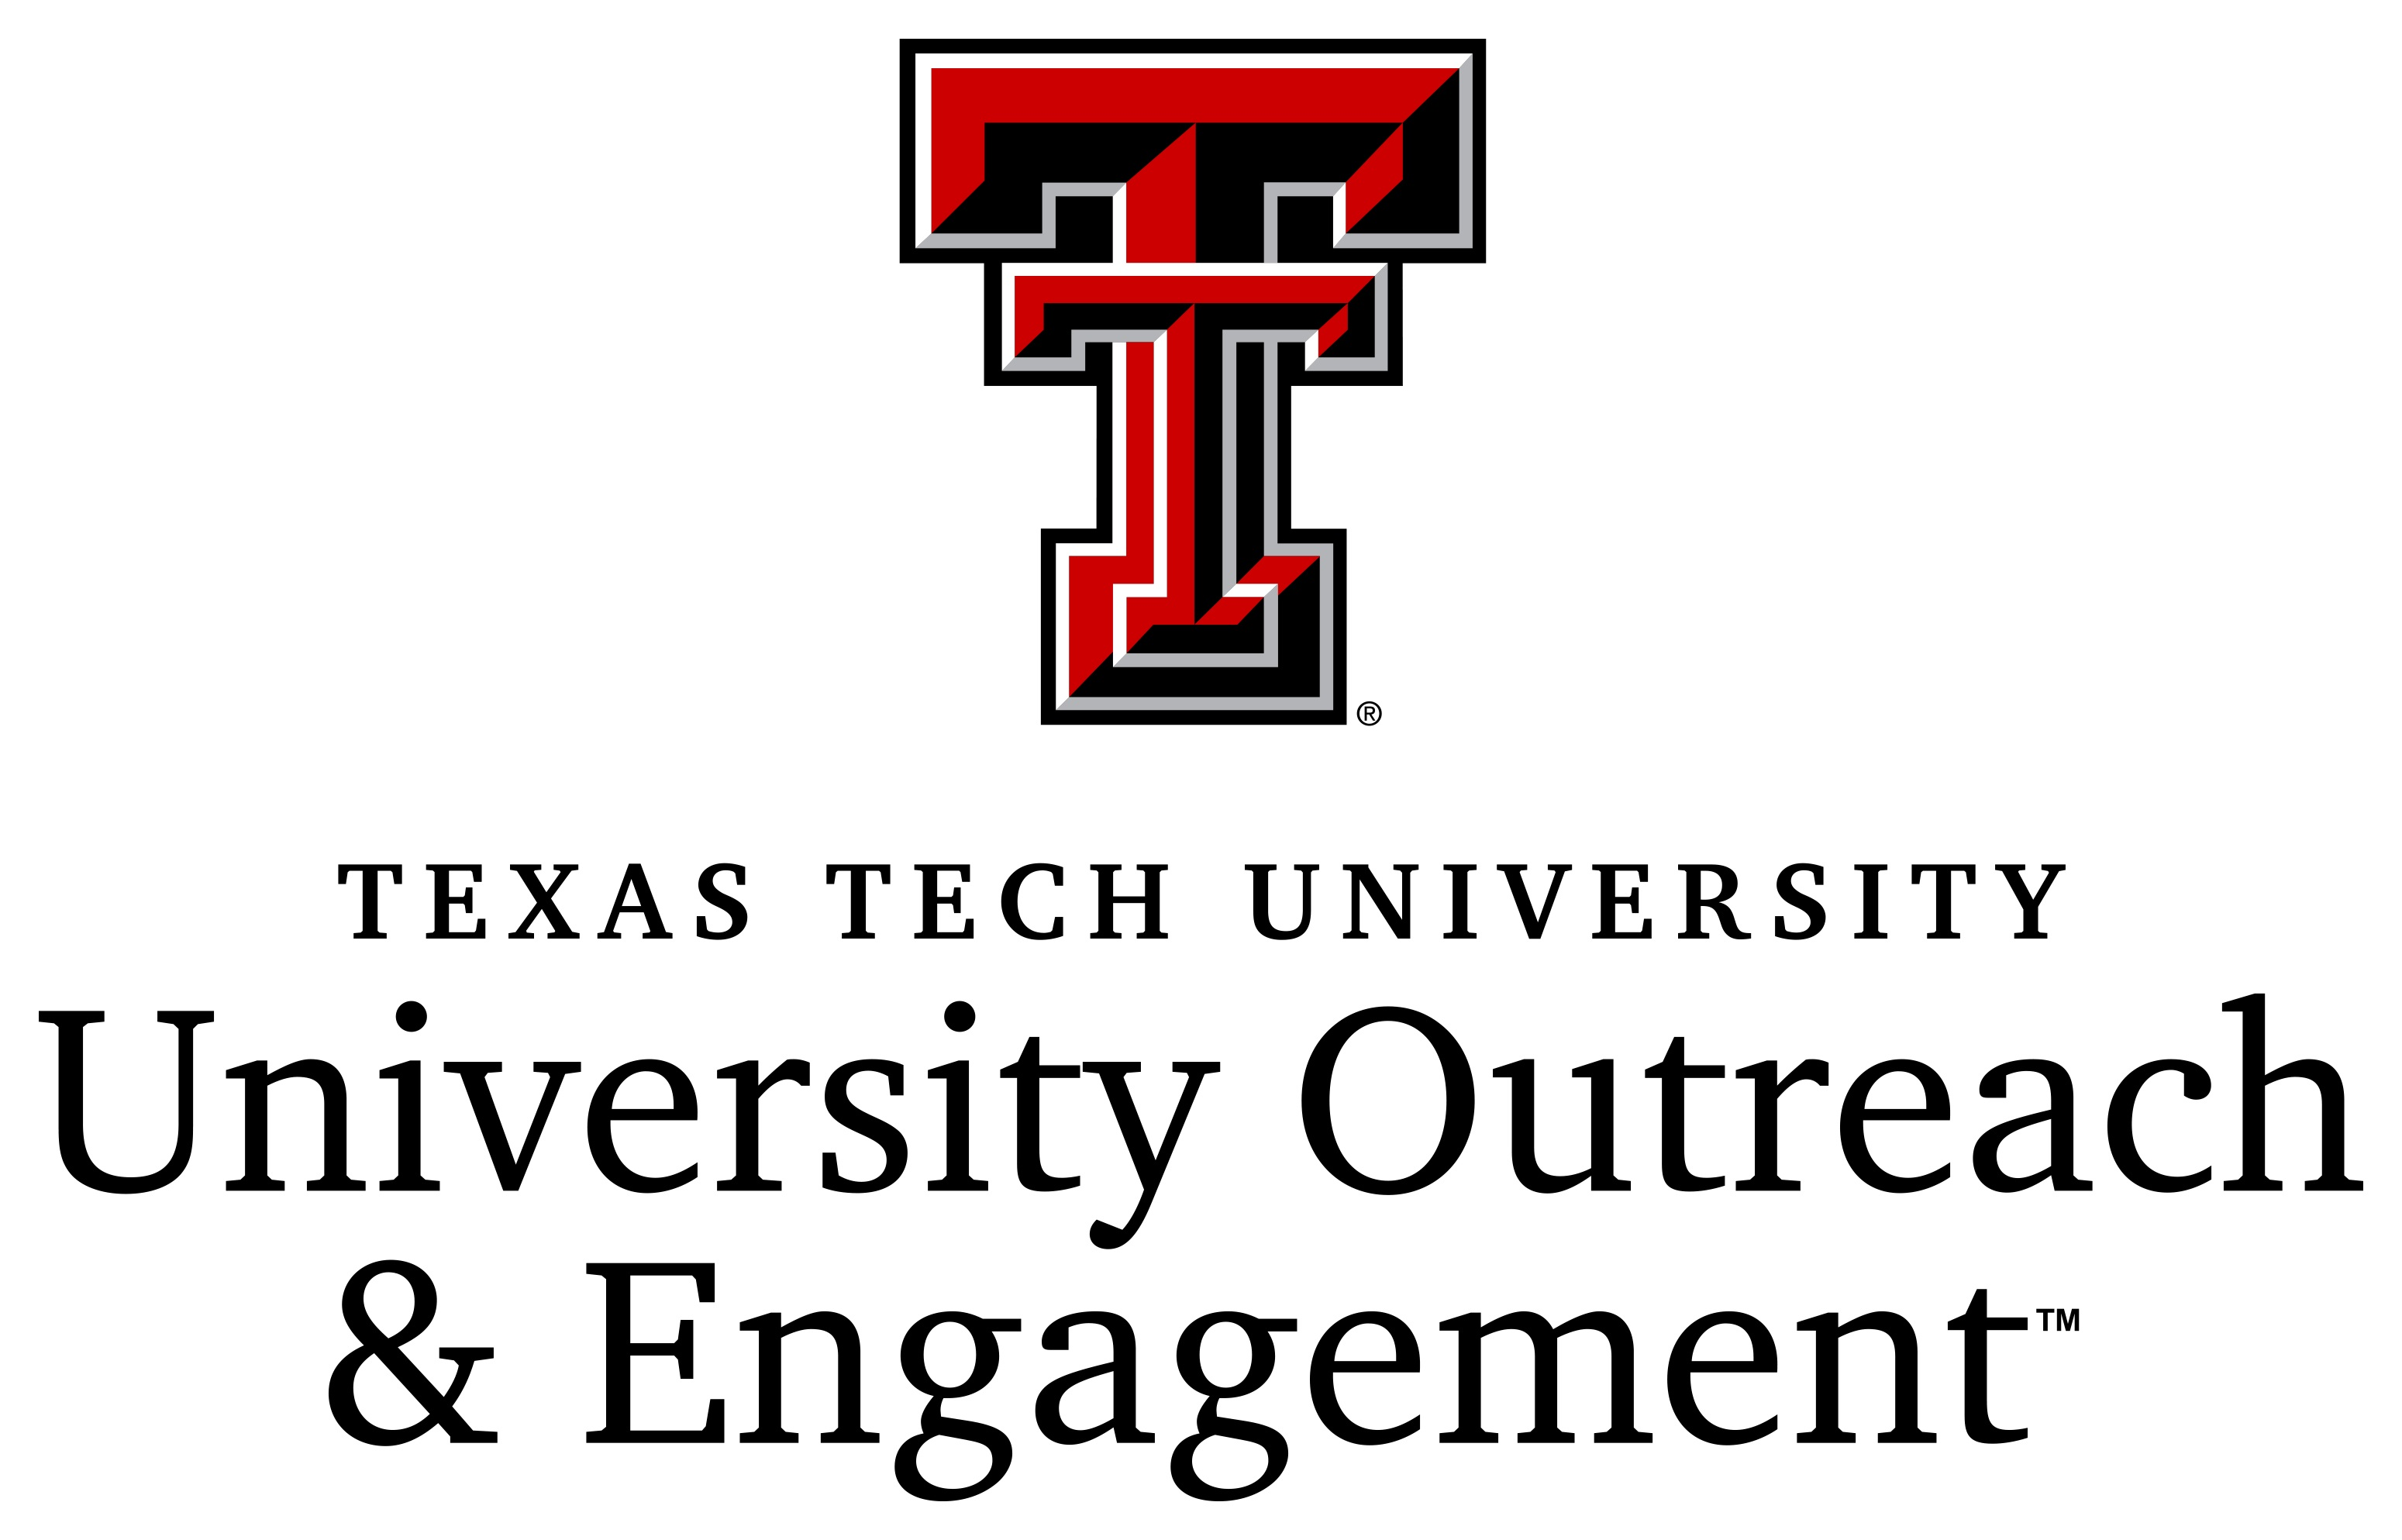 Office of Outreach & Engagement